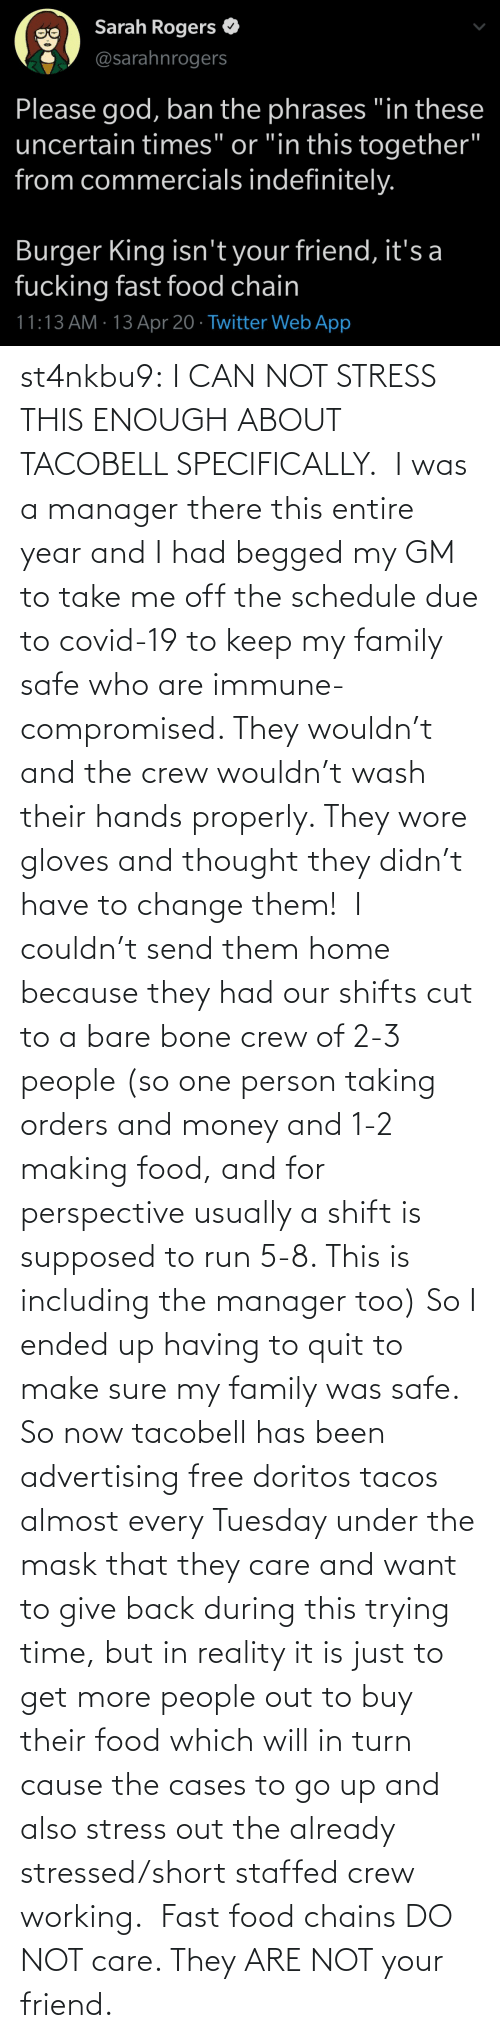 send: st4nkbu9:  I CAN NOT STRESS THIS ENOUGH ABOUT TACOBELL SPECIFICALLY.  I was a manager there this entire year and I had begged my GM to take me off the schedule due to covid-19 to keep my family safe who are immune-compromised. They wouldn't and the crew wouldn't wash their hands properly. They wore gloves and thought they didn't have to change them!  I couldn't send them home because they had our shifts cut to a bare bone crew of 2-3 people (so one person taking orders and money and 1-2 making food, and for perspective usually a shift is supposed to run 5-8. This is including the manager too) So I ended up having to quit to make sure my family was safe. So now tacobell has been advertising free doritos tacos almost every Tuesday under the mask that they care and want to give back during this trying time, but in reality it is just to get more people out to buy their food which will in turn cause the cases to go up and also stress out the already stressed/short staffed crew working.  Fast food chains DO NOT care. They ARE NOT your friend.